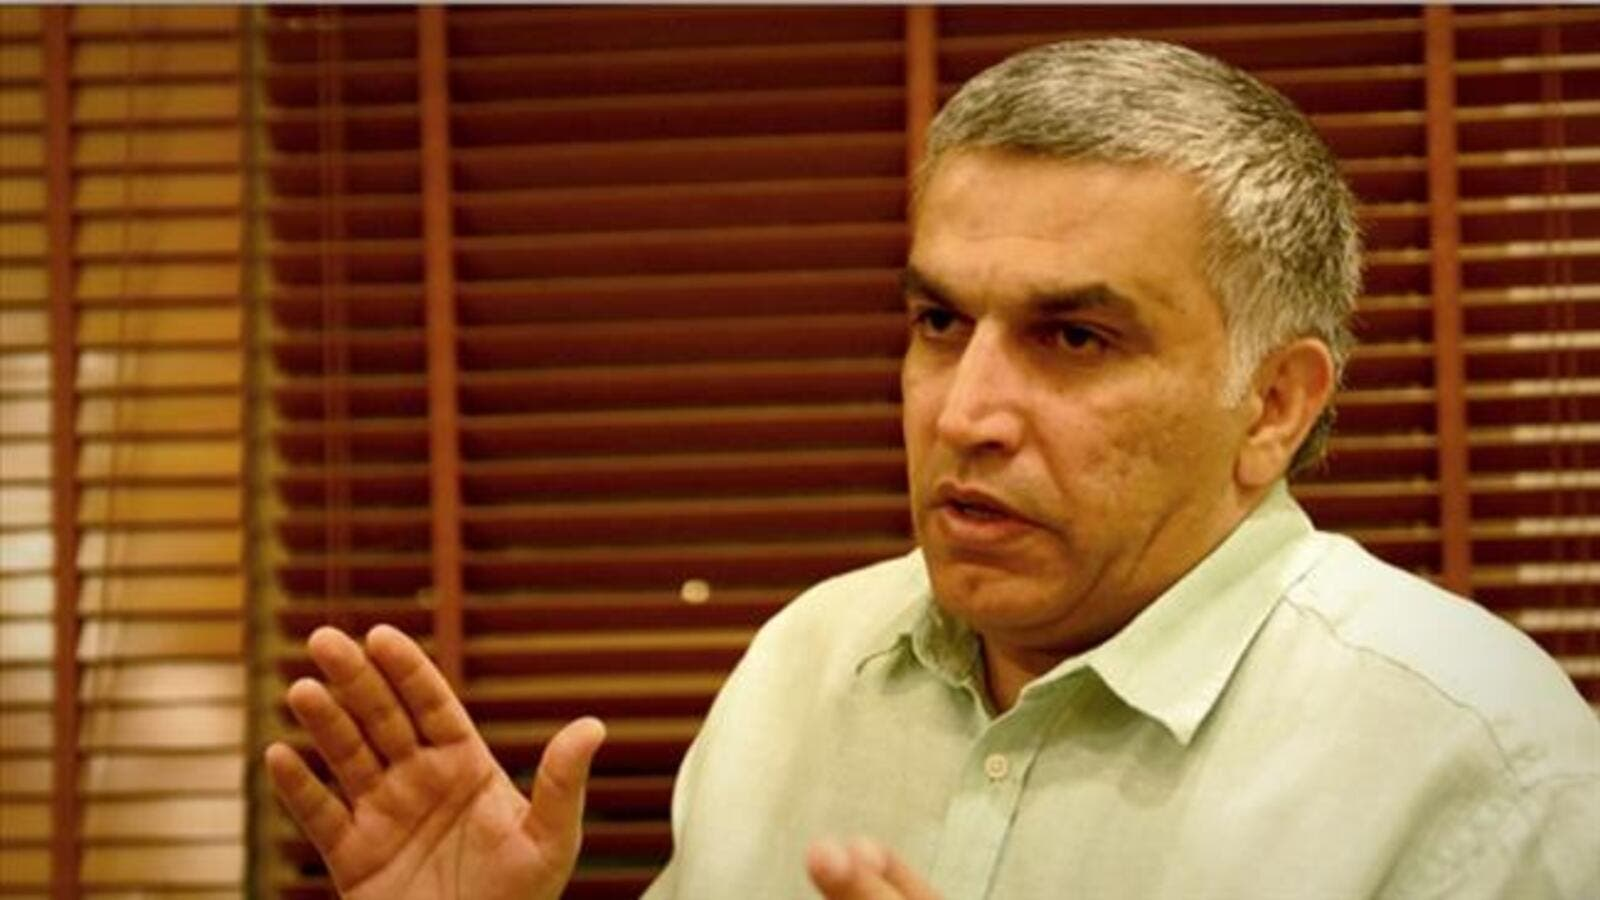 A file photo of prominent Bahraini human rights campaigner Nabeel Rajab. (File photo)